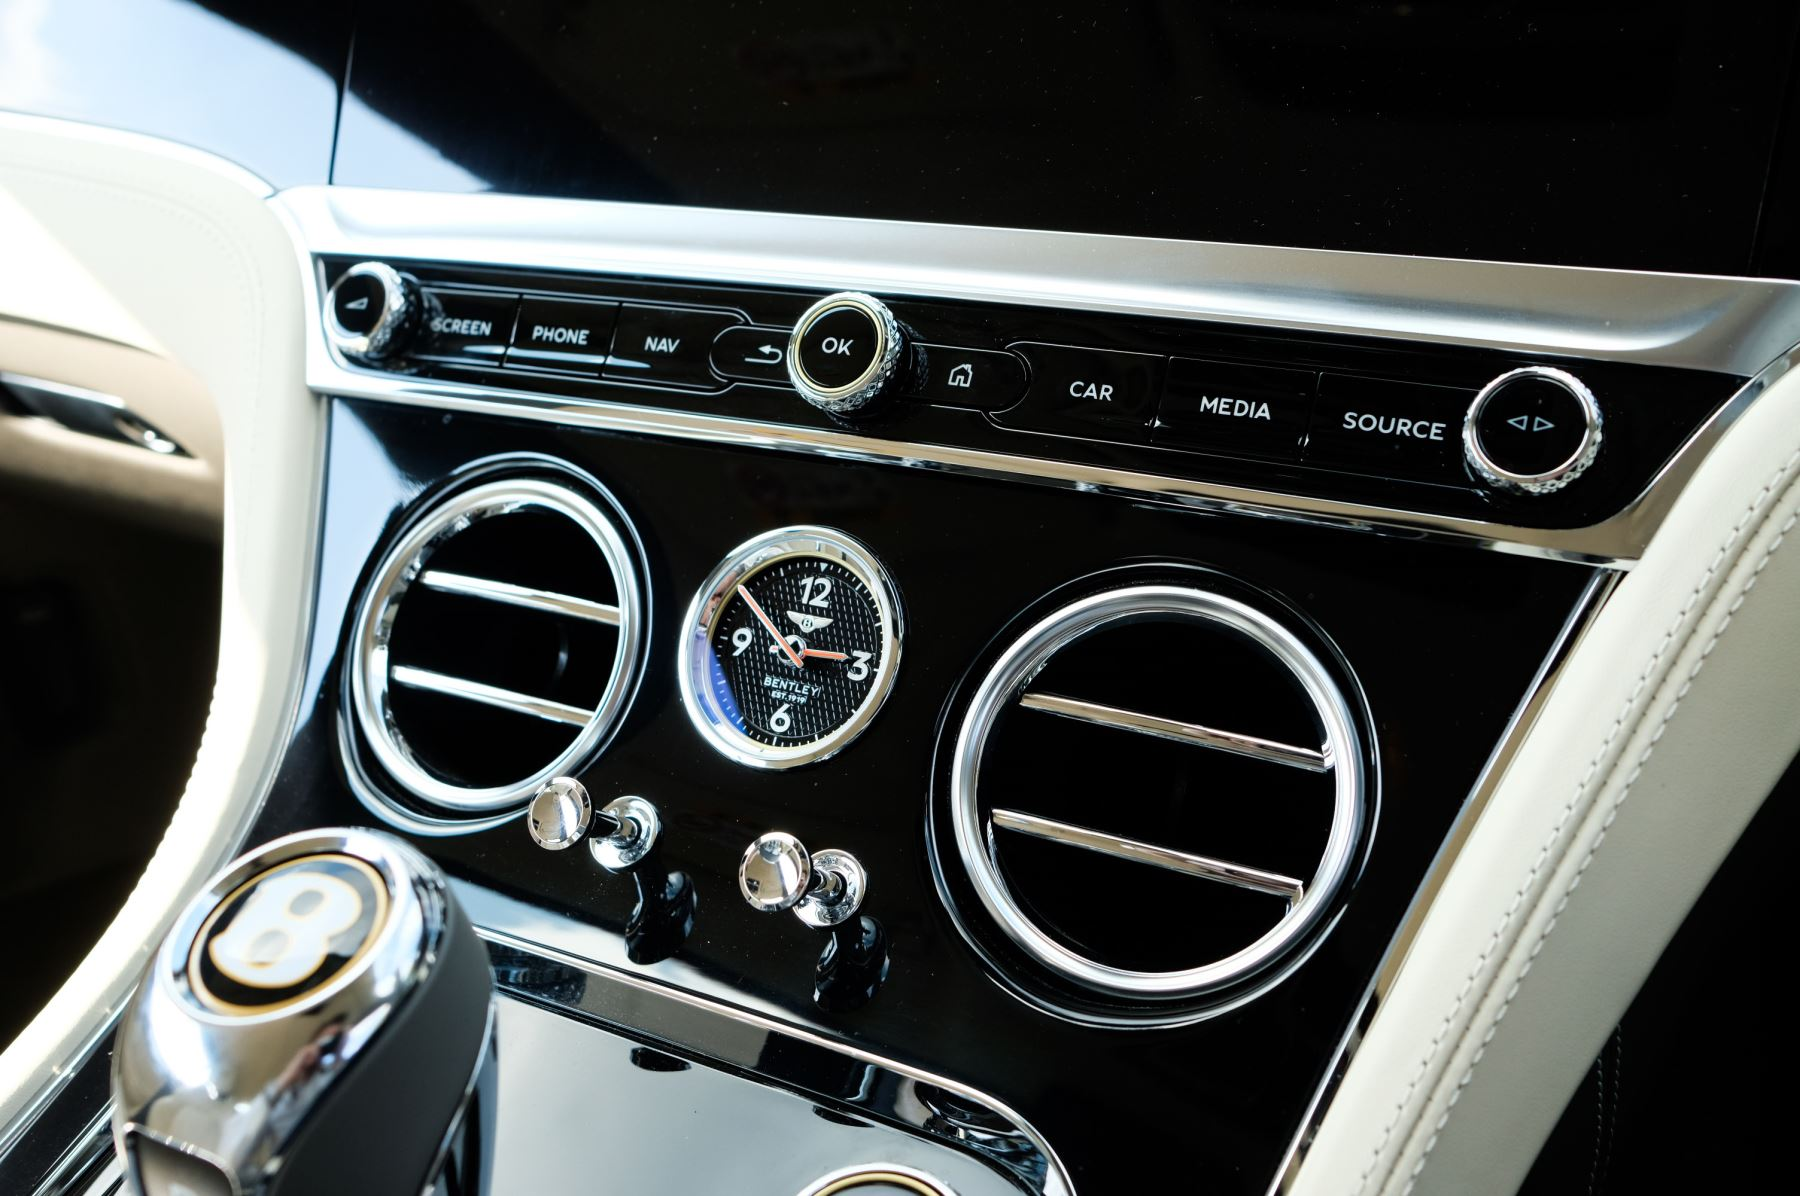 Bentley Continental GT 4.0 V8 - Mulliner Driving Specification with Black Painted Wheels - Touring and Centenary Spec image 25